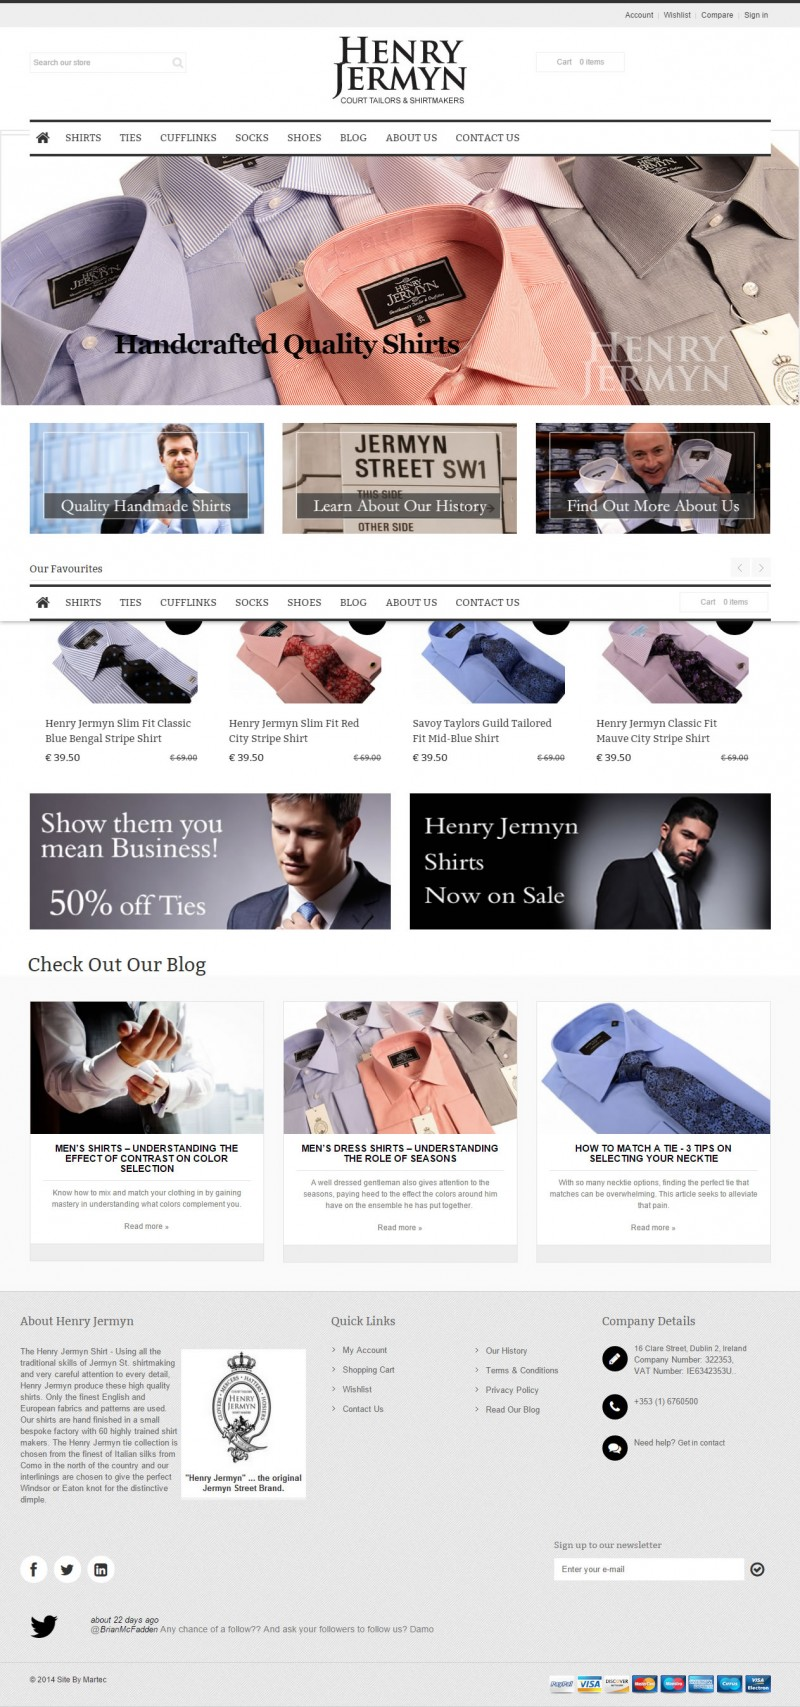 Henry Jermyn Ecommerce Website Design Dublin